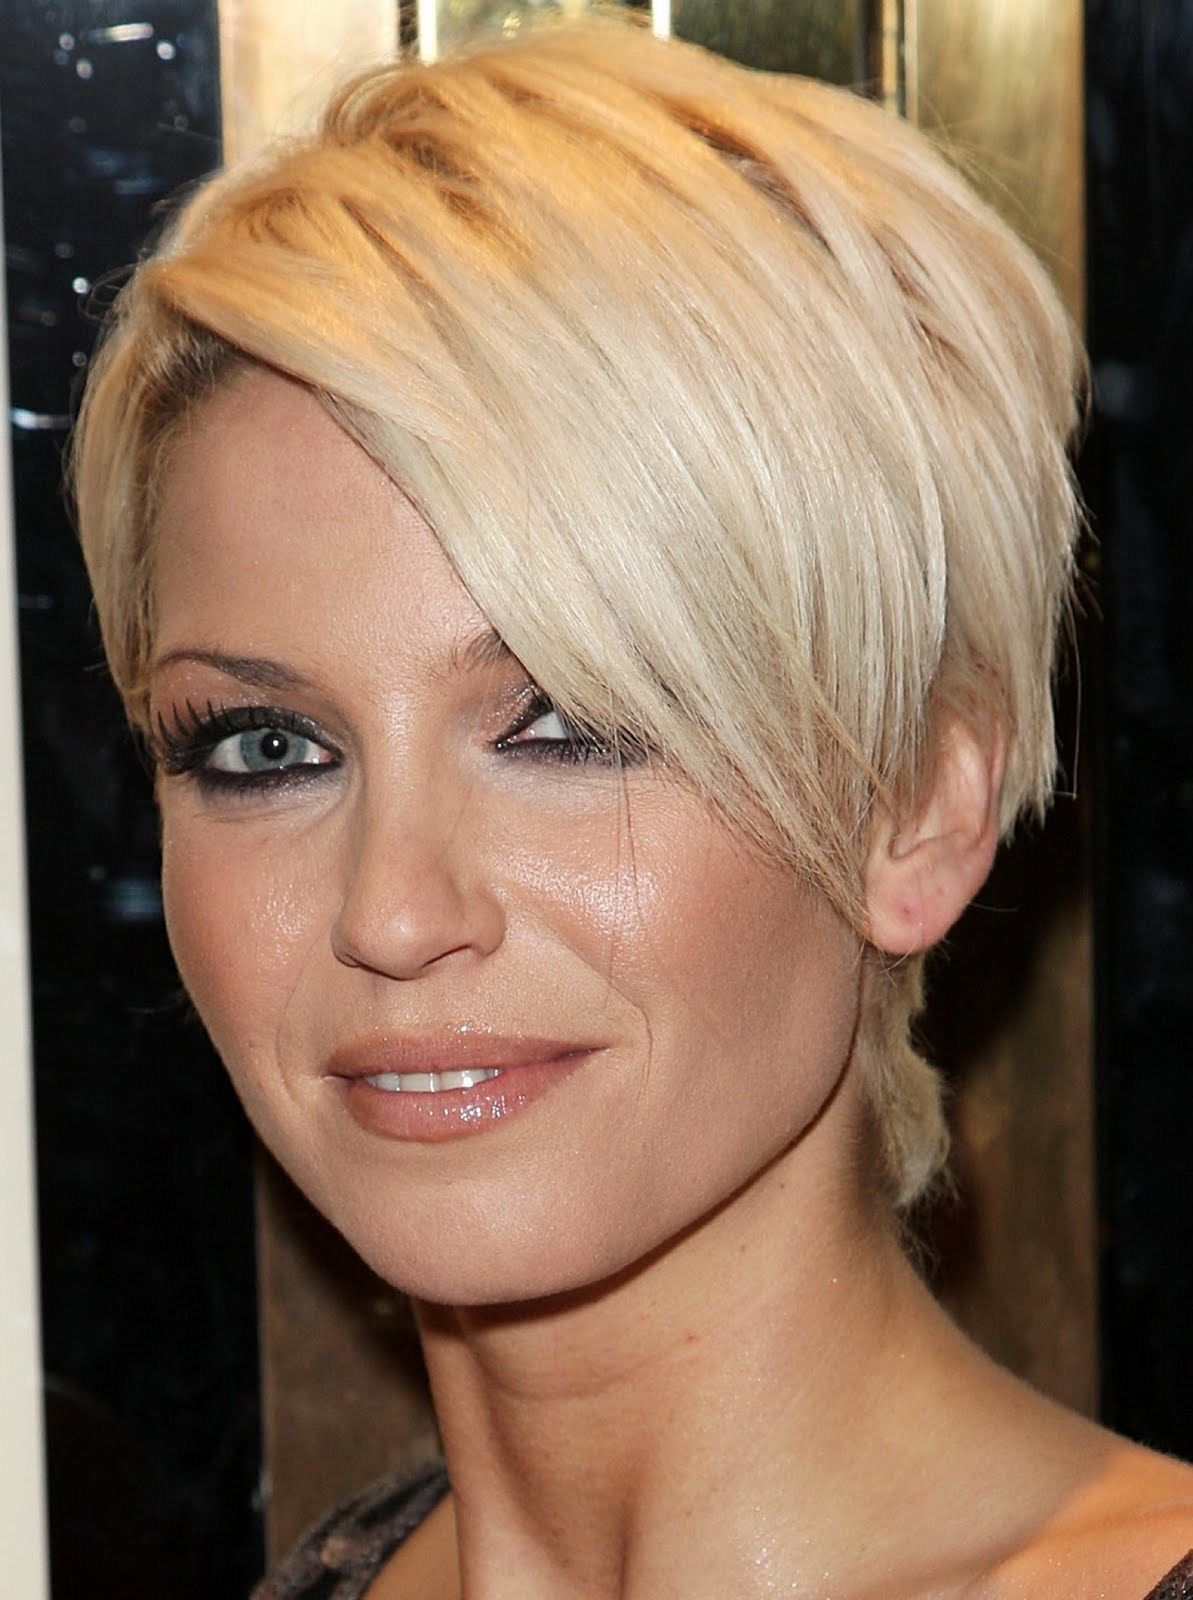 Bob Haircuts Names Haircuts Hair Pinterest Haircuts And Bobs